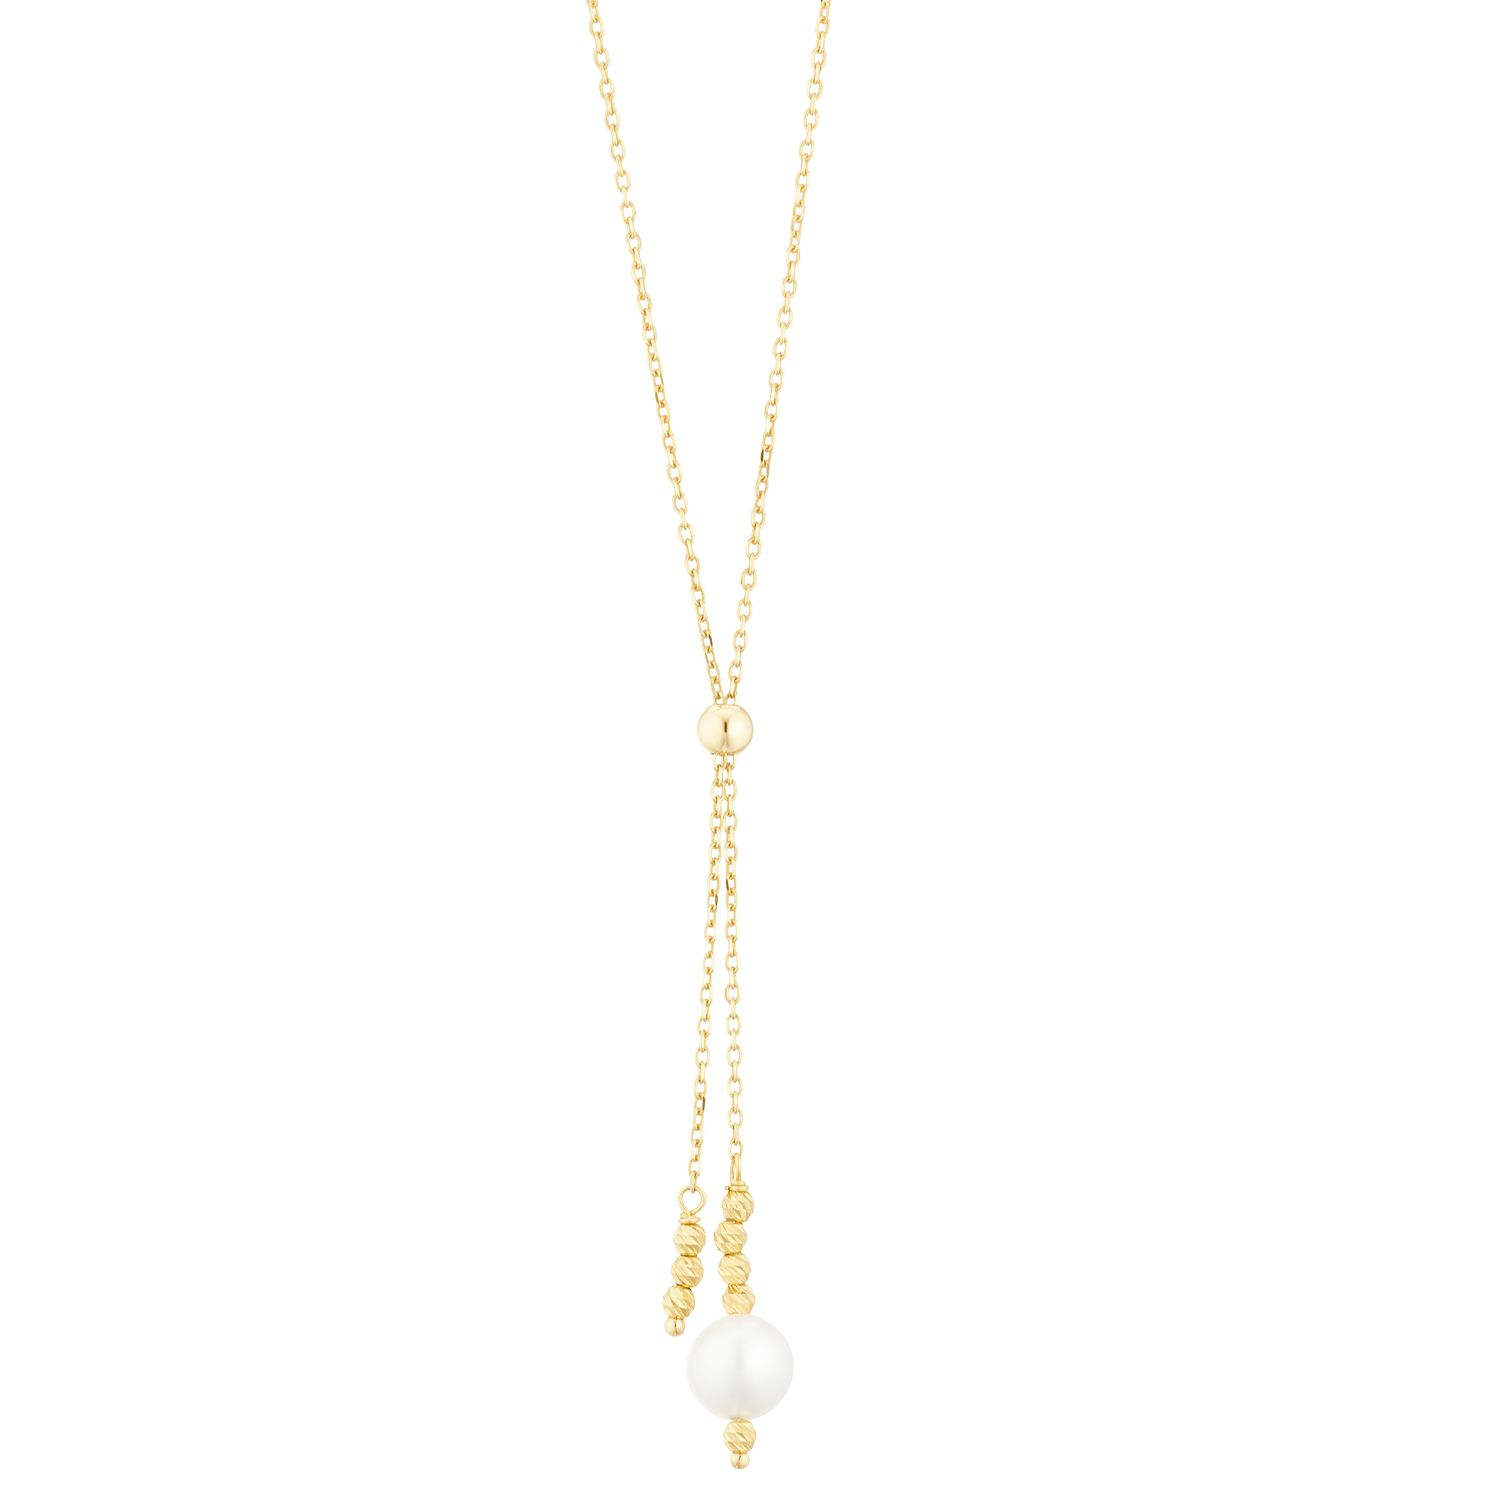 9ct Yellow Gold Ball Cultured Freshwater Pearl Necklace - Product number 3284301